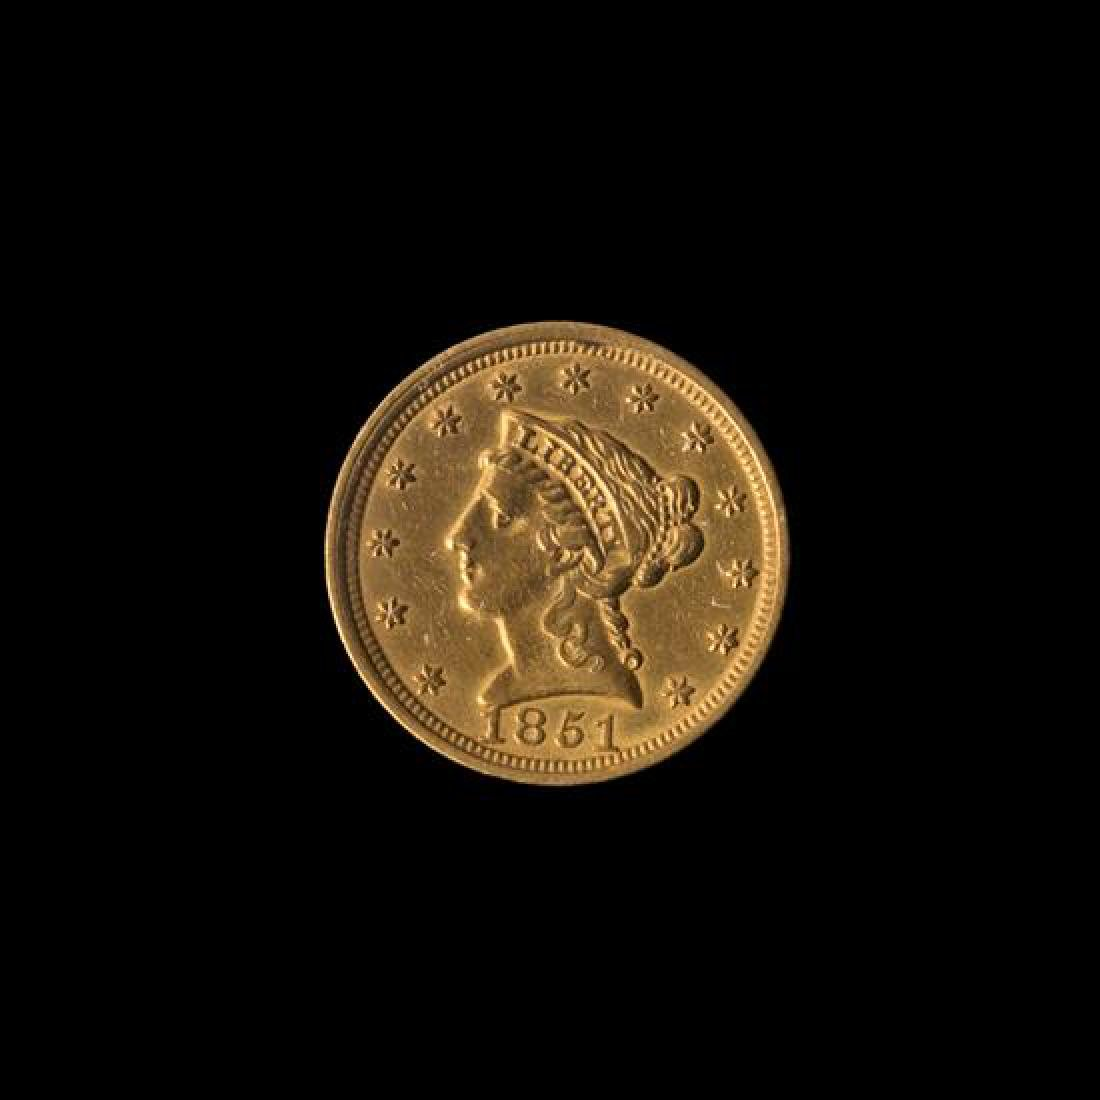 A United States 1851 Liberty Head $2.50 Gold Coin